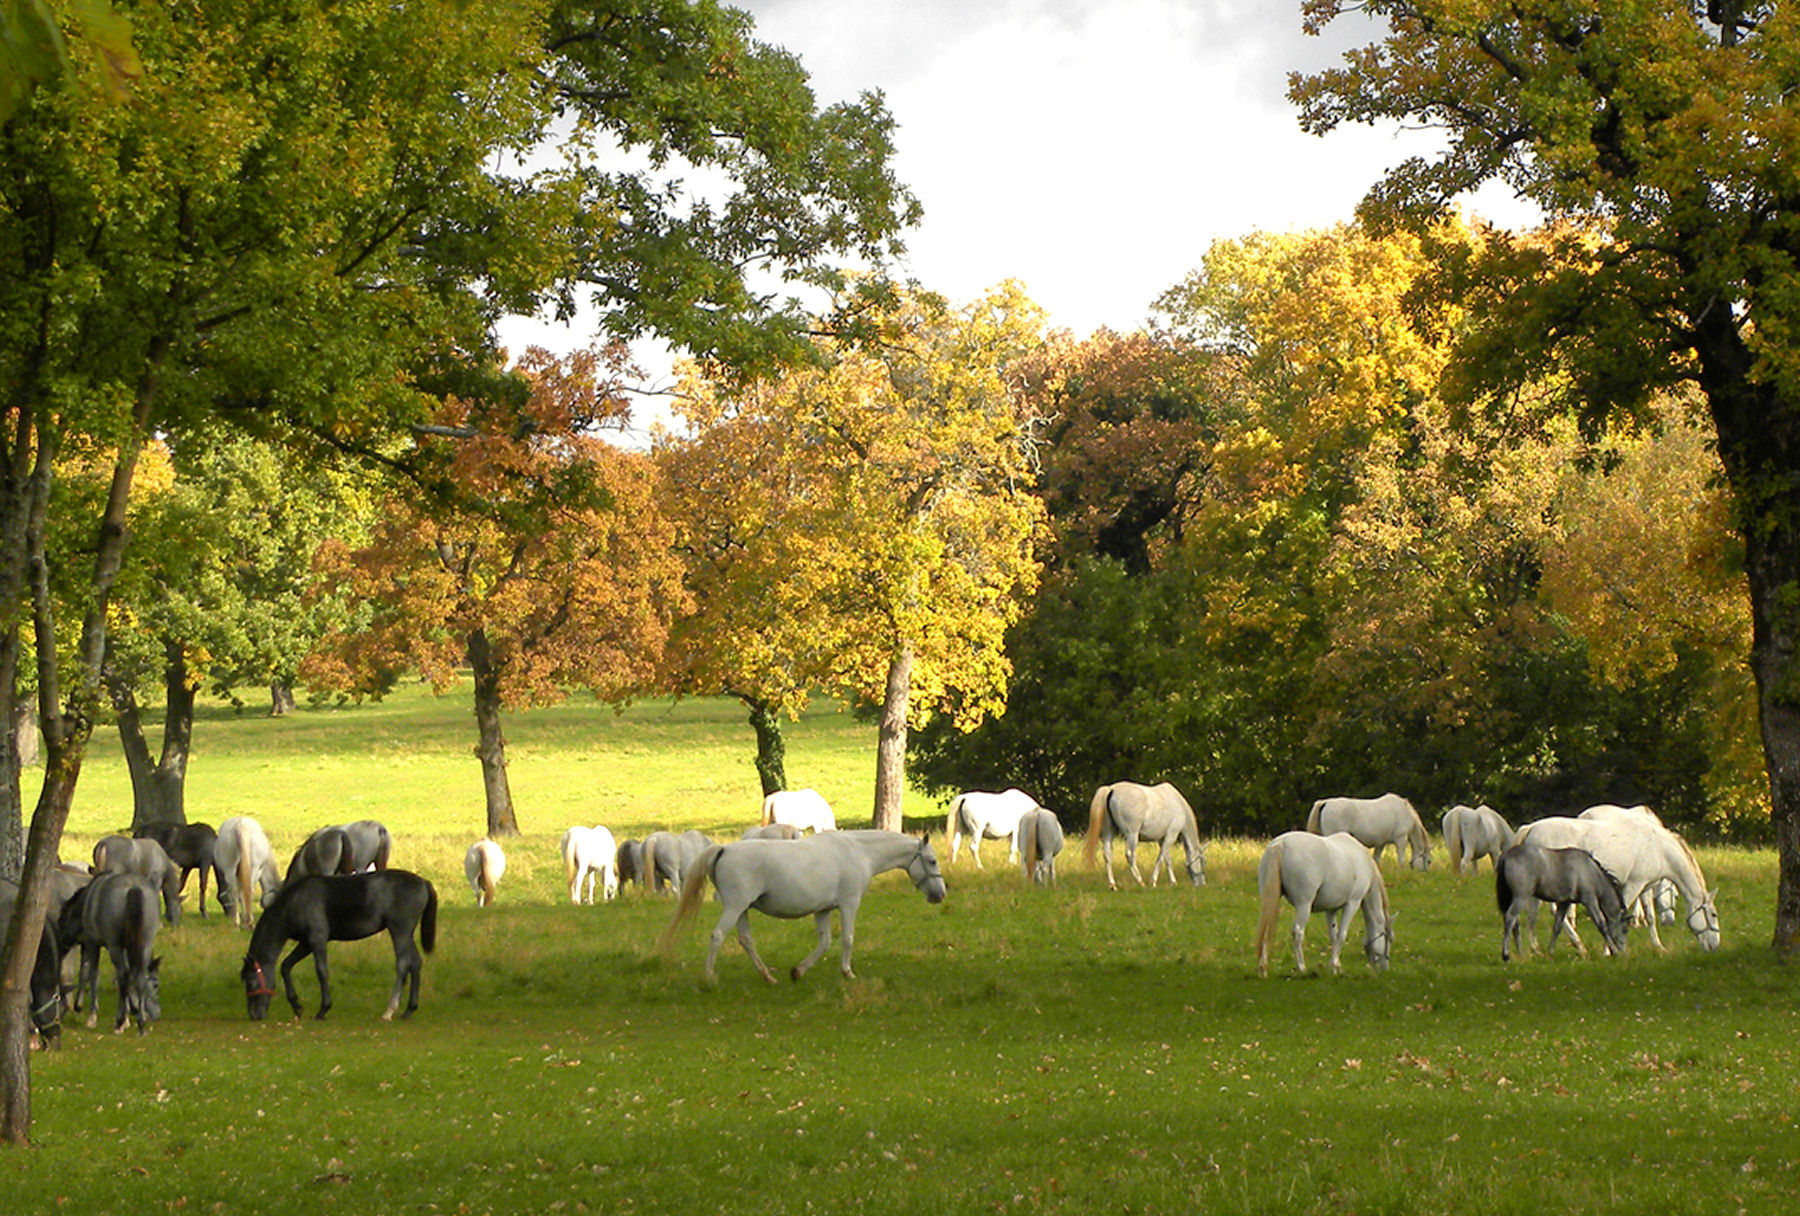 10 Beautiful Photos to Inspire You to Visit the Lipica Stud Farm in ... for Most Beautiful Farms In The World  568zmd